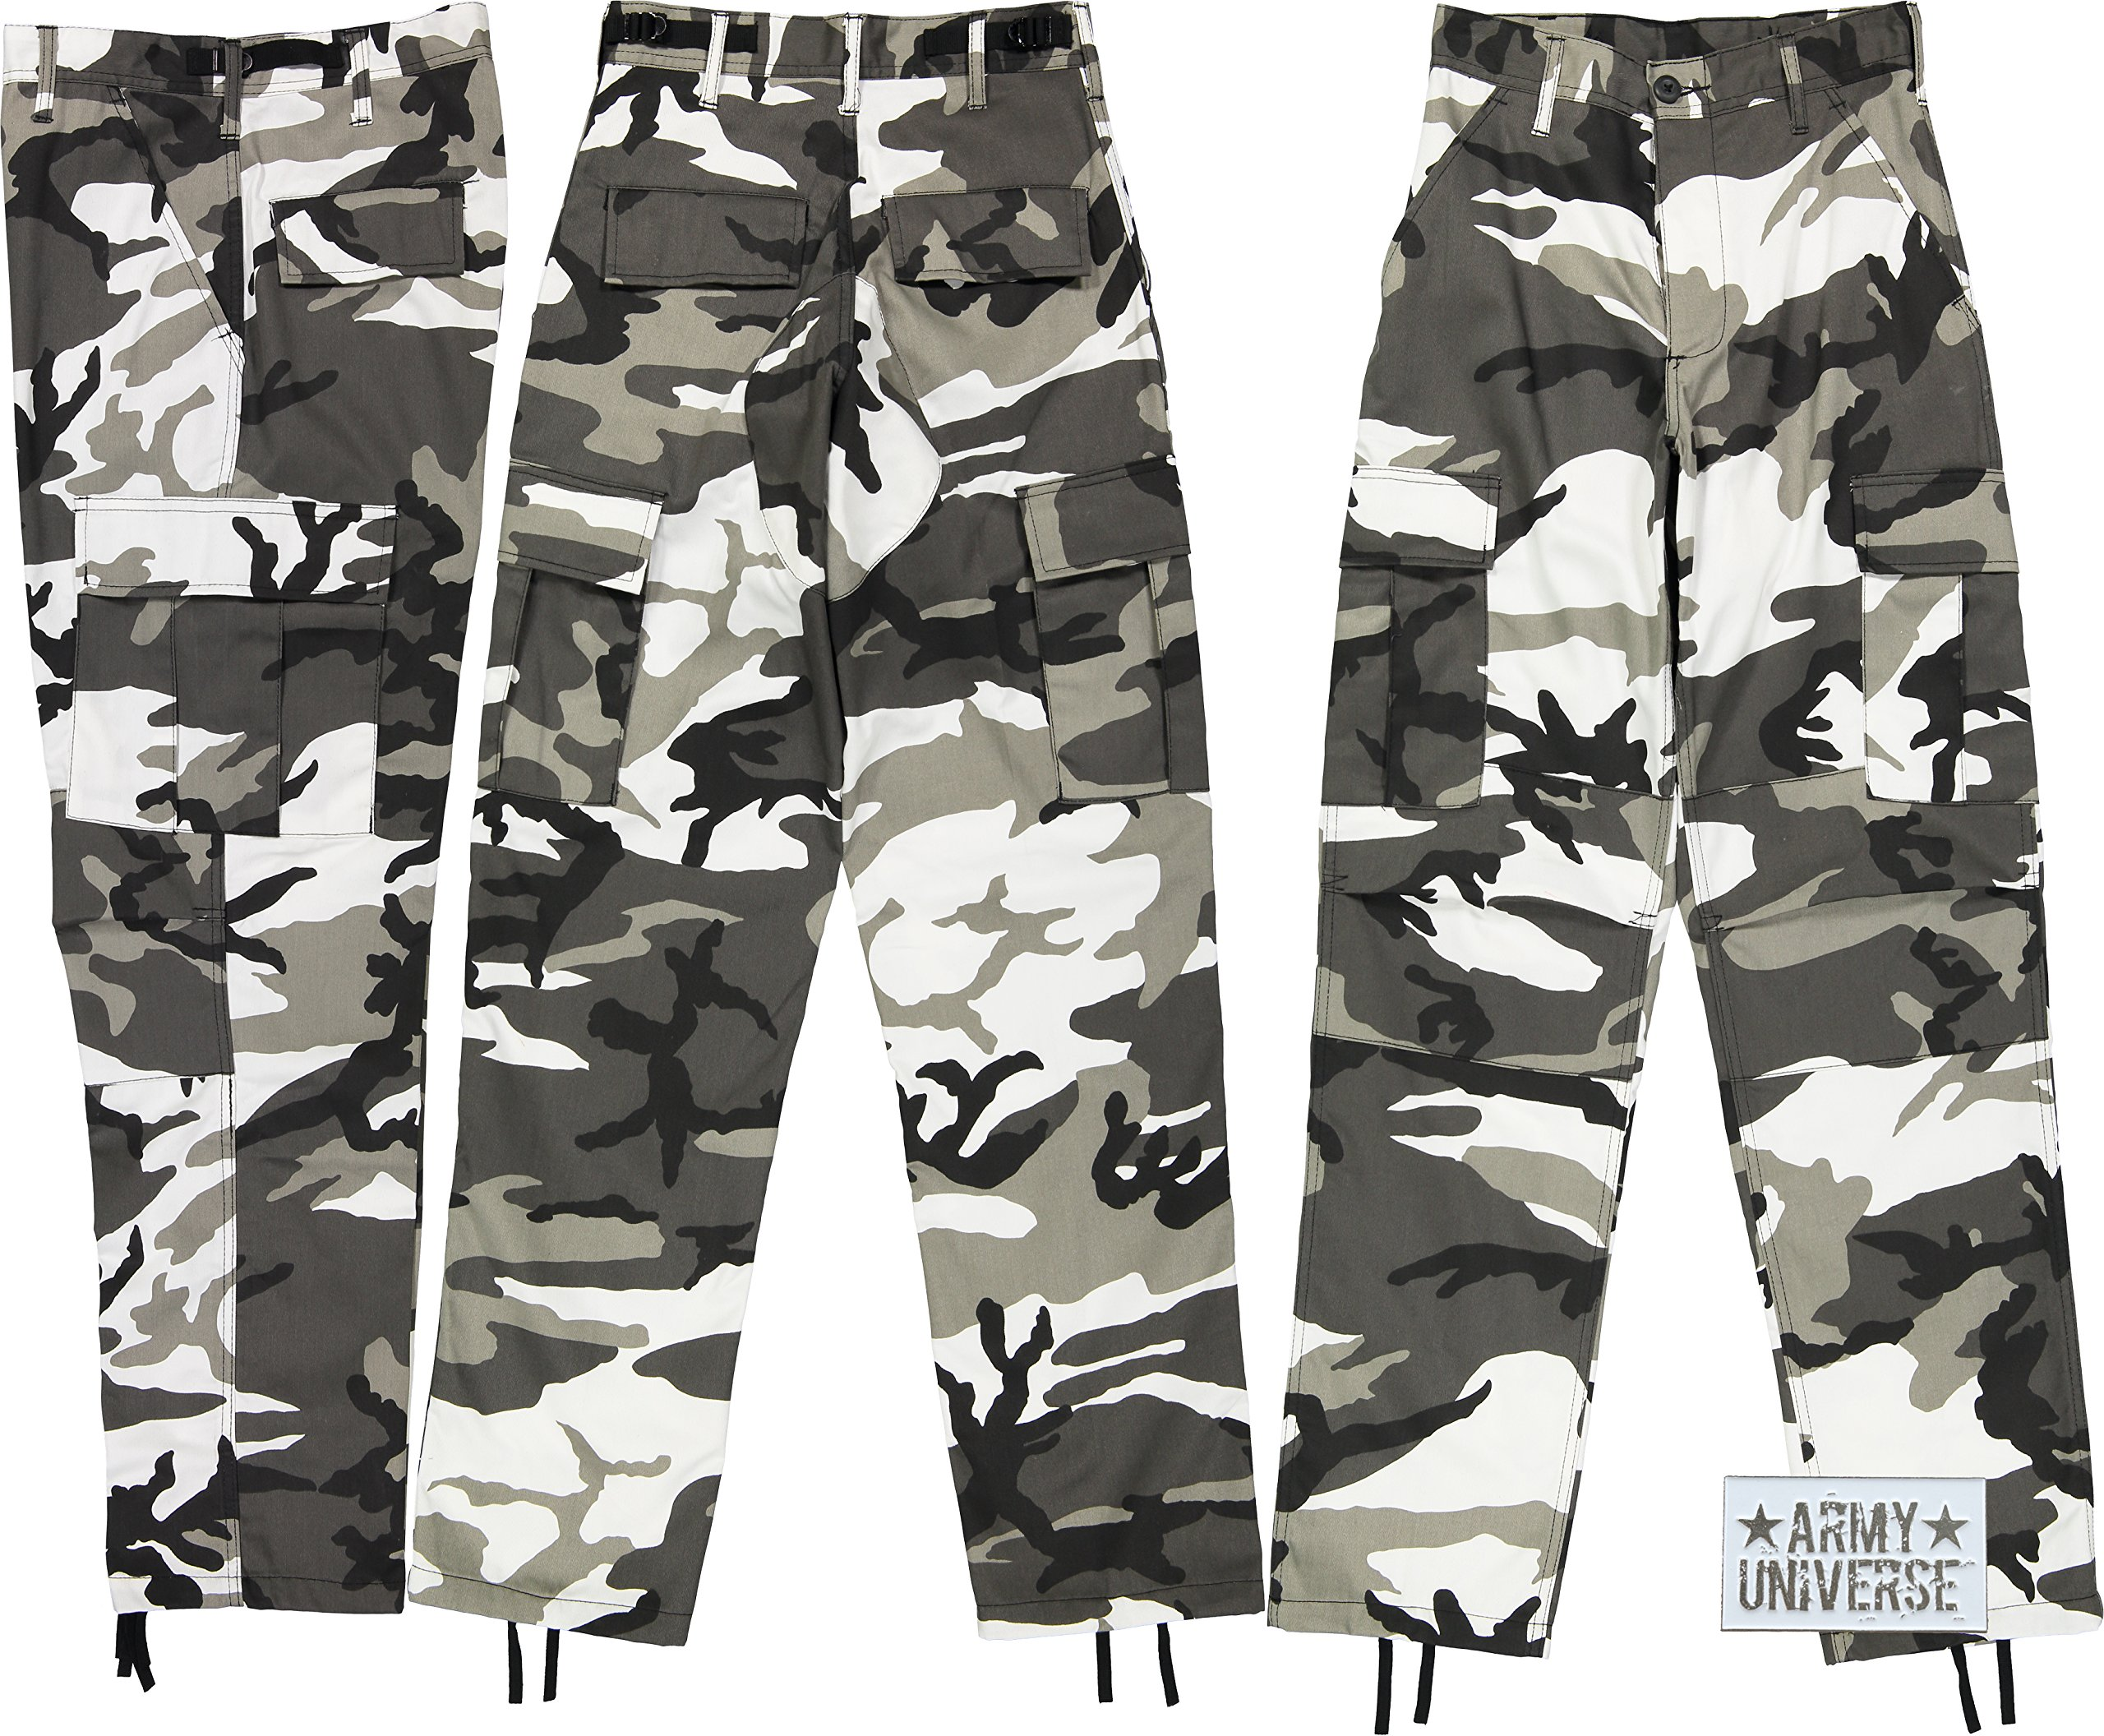 Urban City Camouflage Poly/Cotton Military BDU Fatigue Pants with Official ArmyUniverse Pin (Large Regular W 35-39 - I 29.5-32.5)